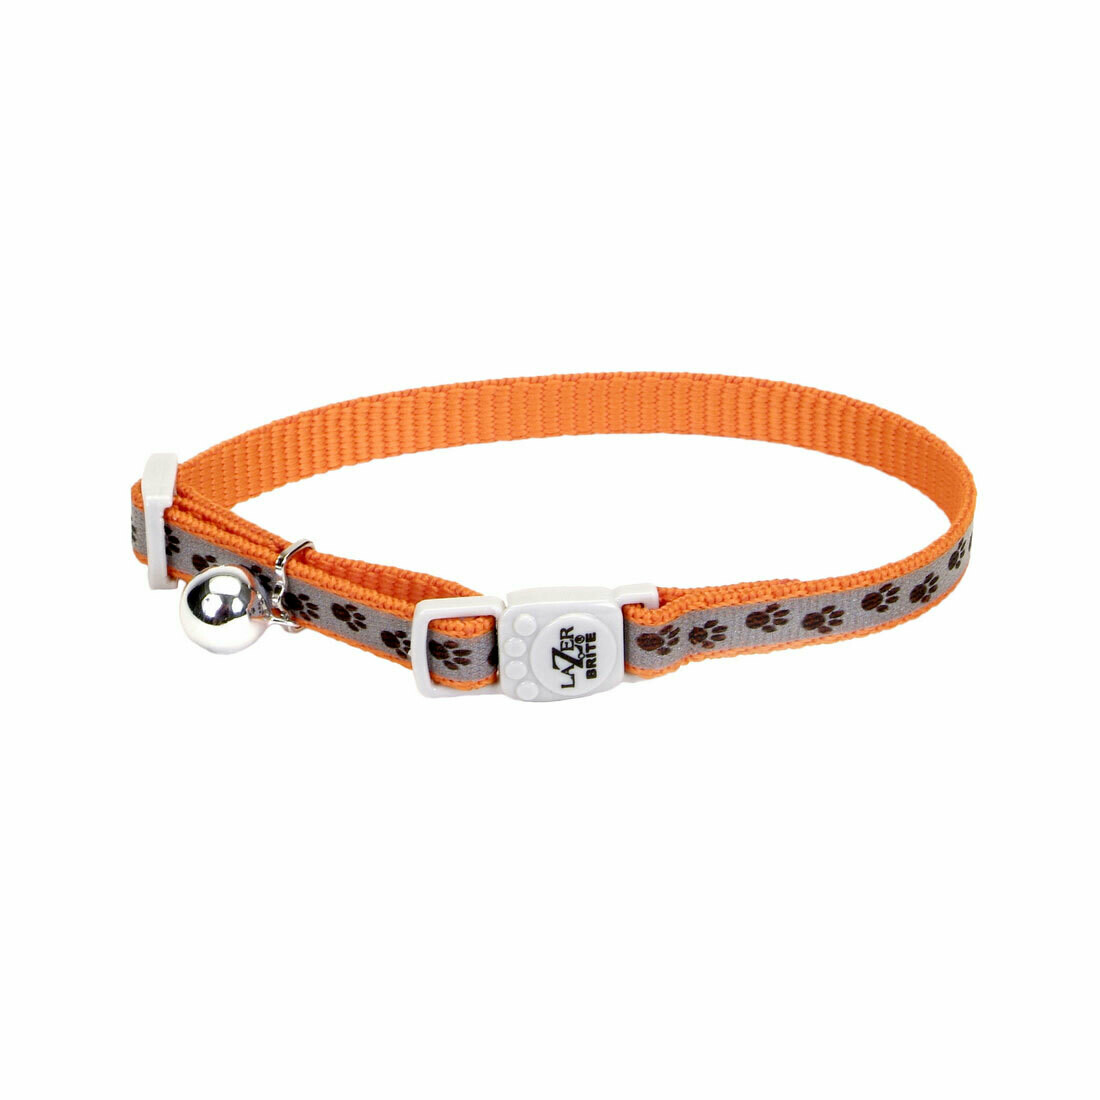 Lazer Brite Cat Collar - Orange Paws